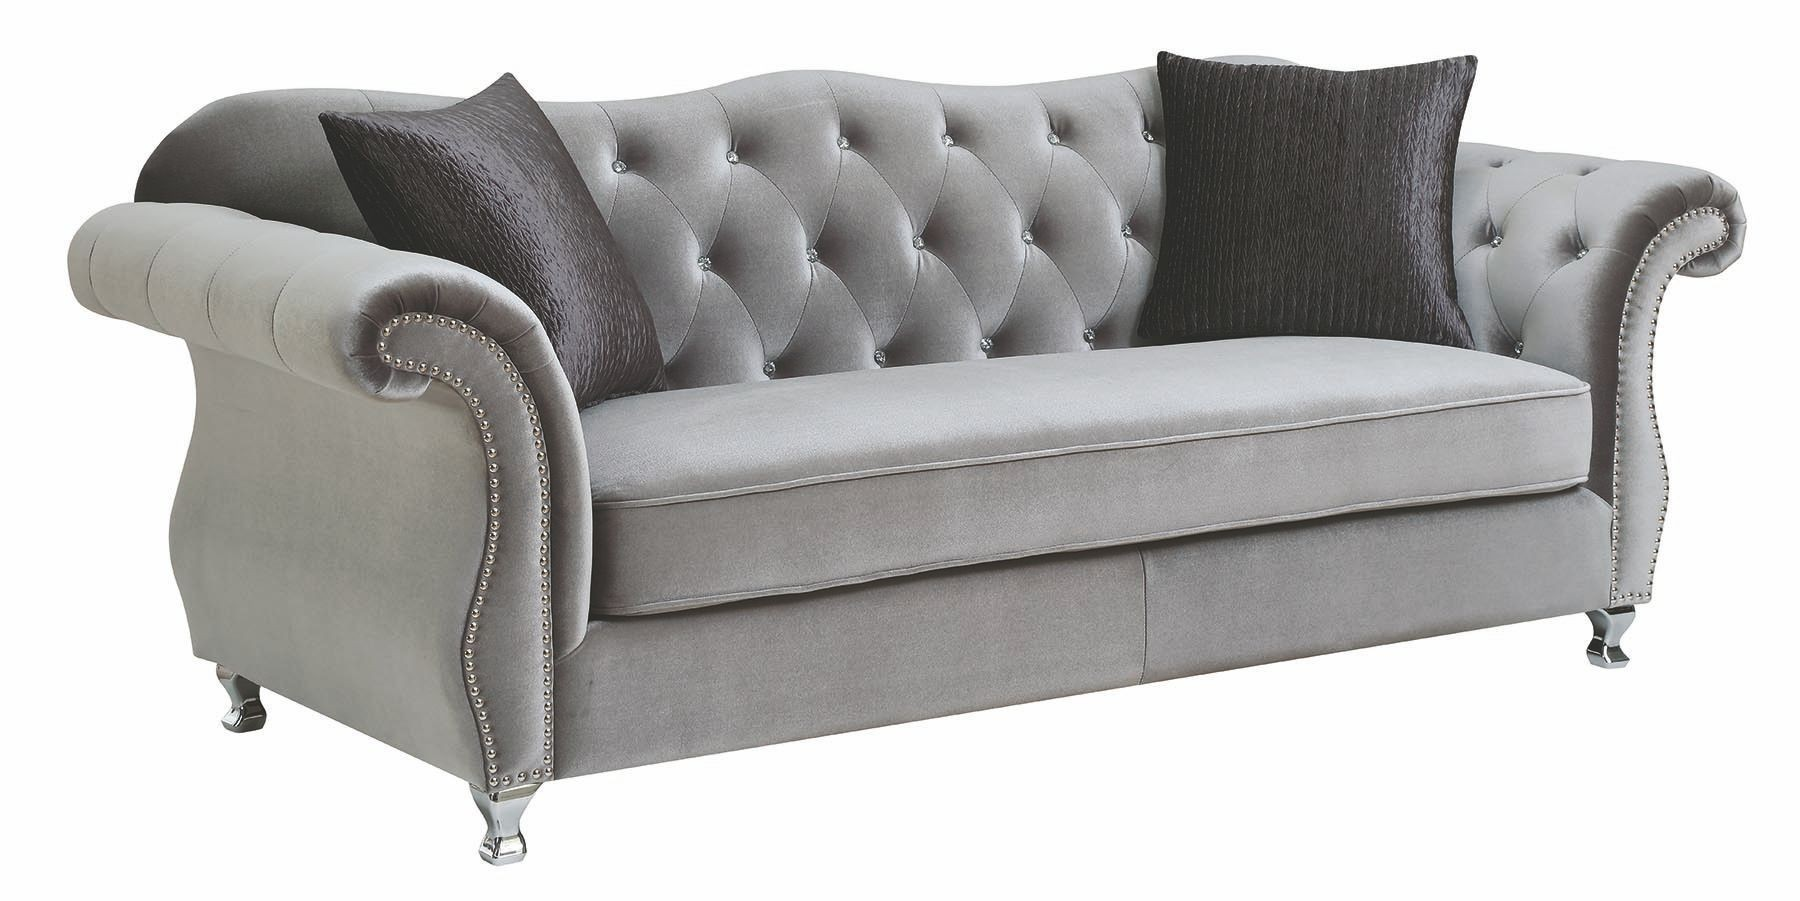 Frostine Silver Sofa From Coaster Coleman Furniture